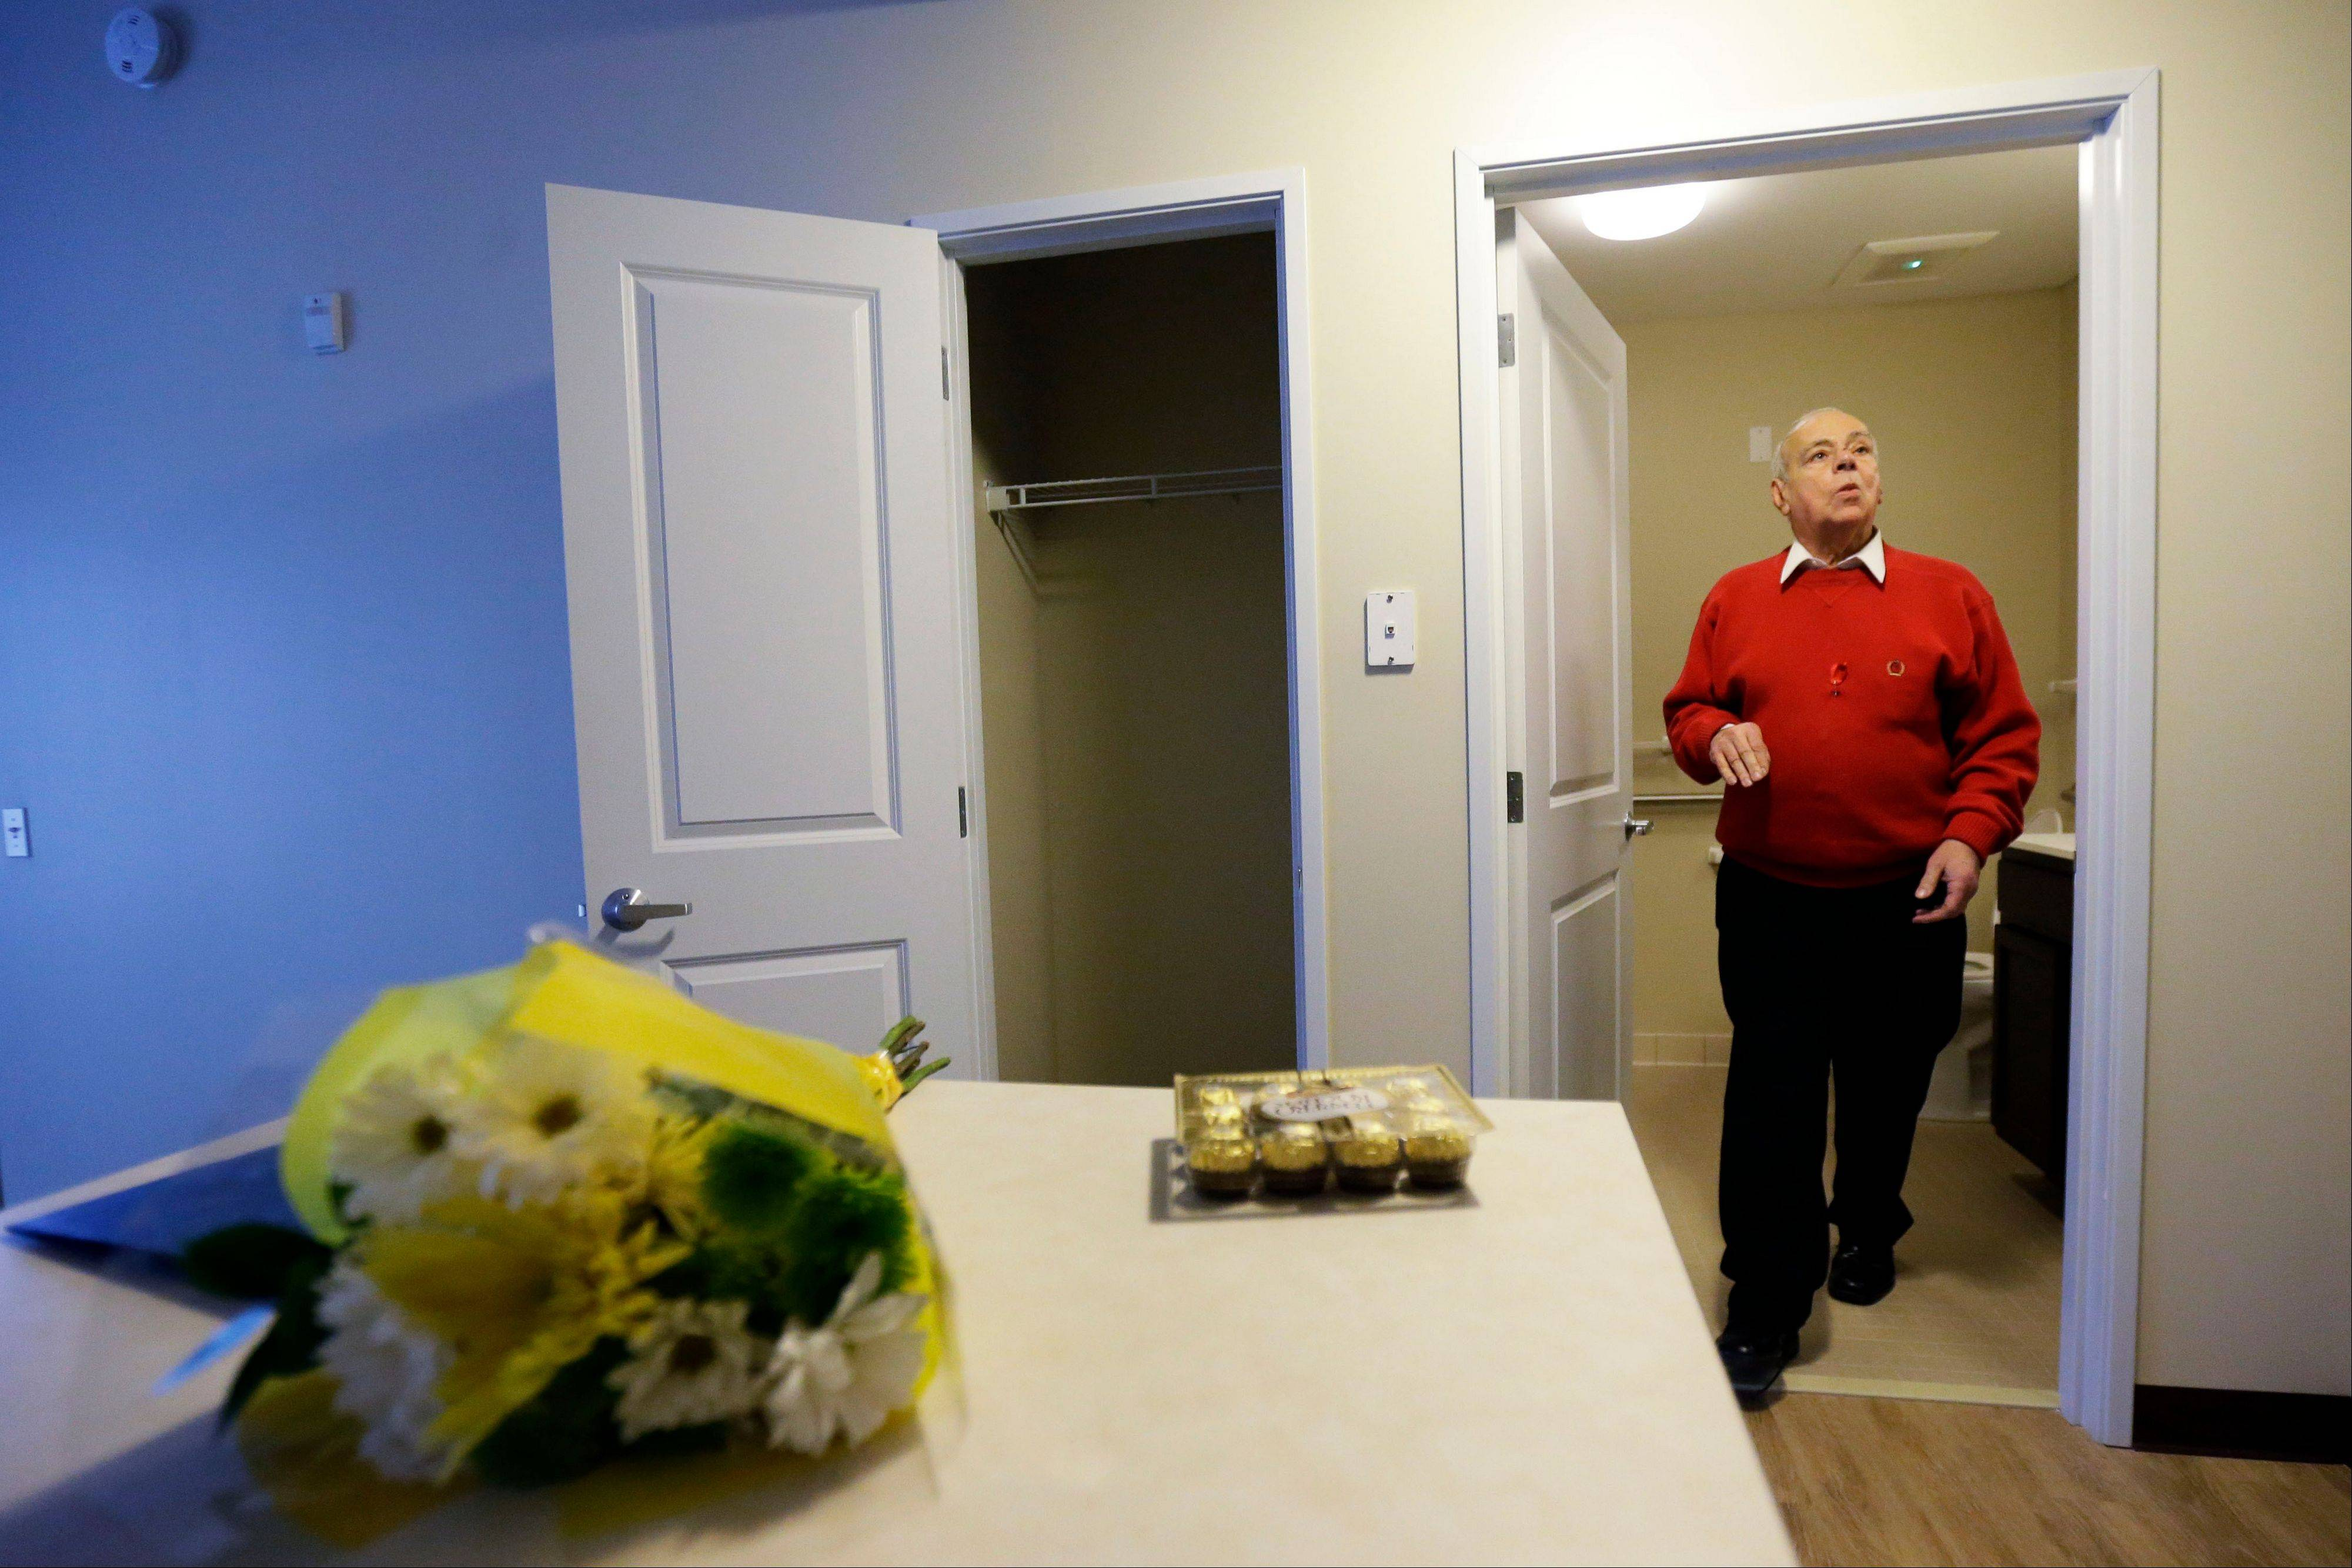 Jerry Zeft, 70, explores his new home in the John C. Anderson apartments, an affordable housing complex aimed at gay seniors.